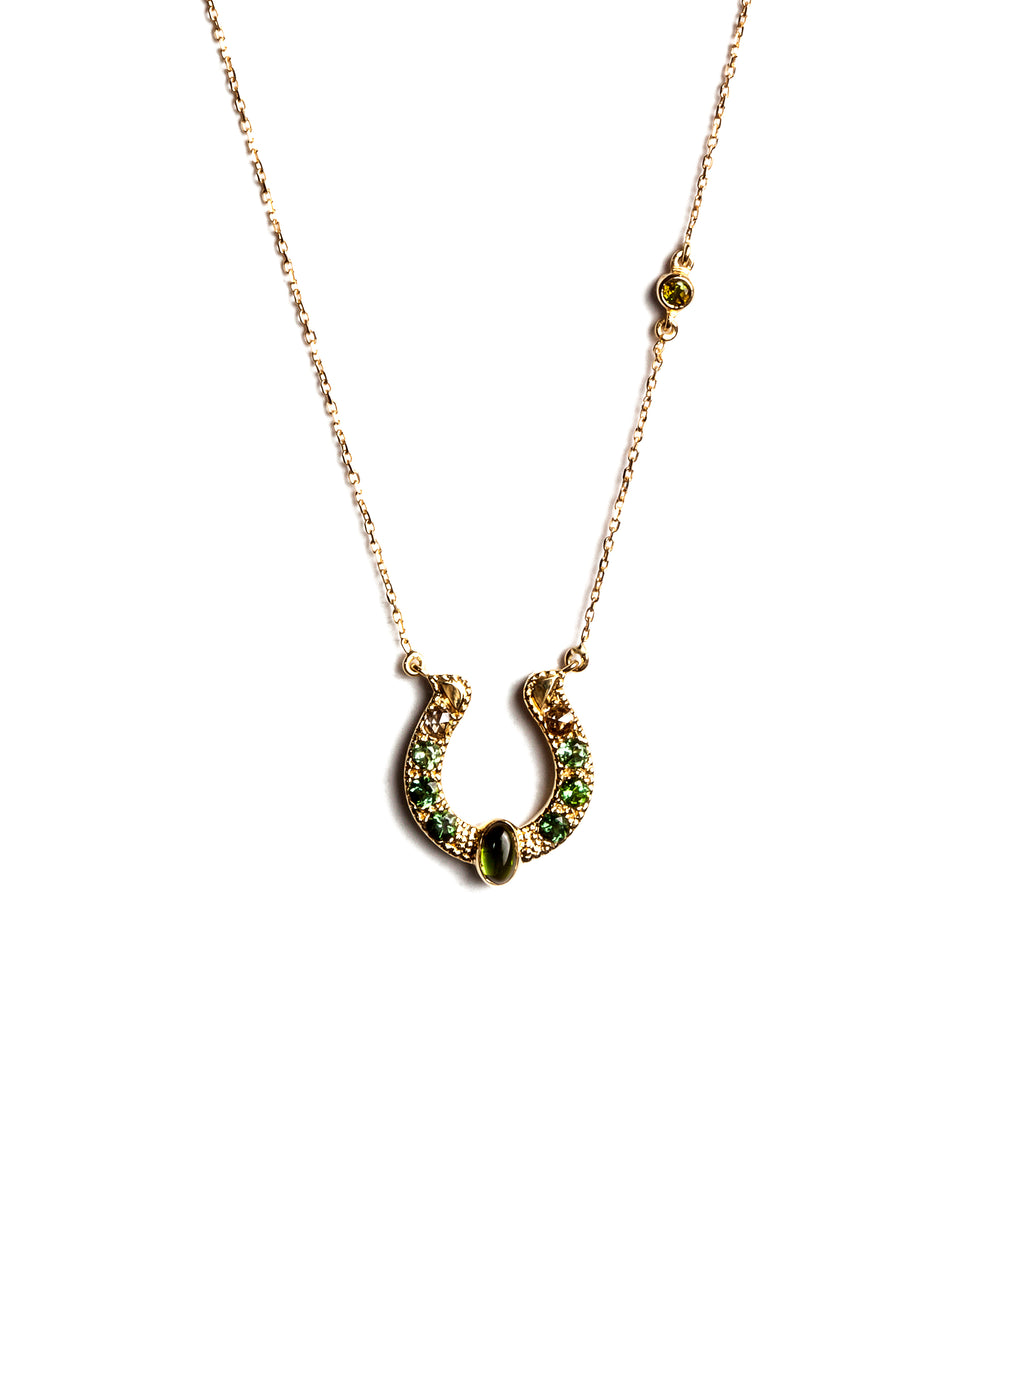 Horseshoe Necklace with Green Tourmalines, Diamonds and Cabochon Accent